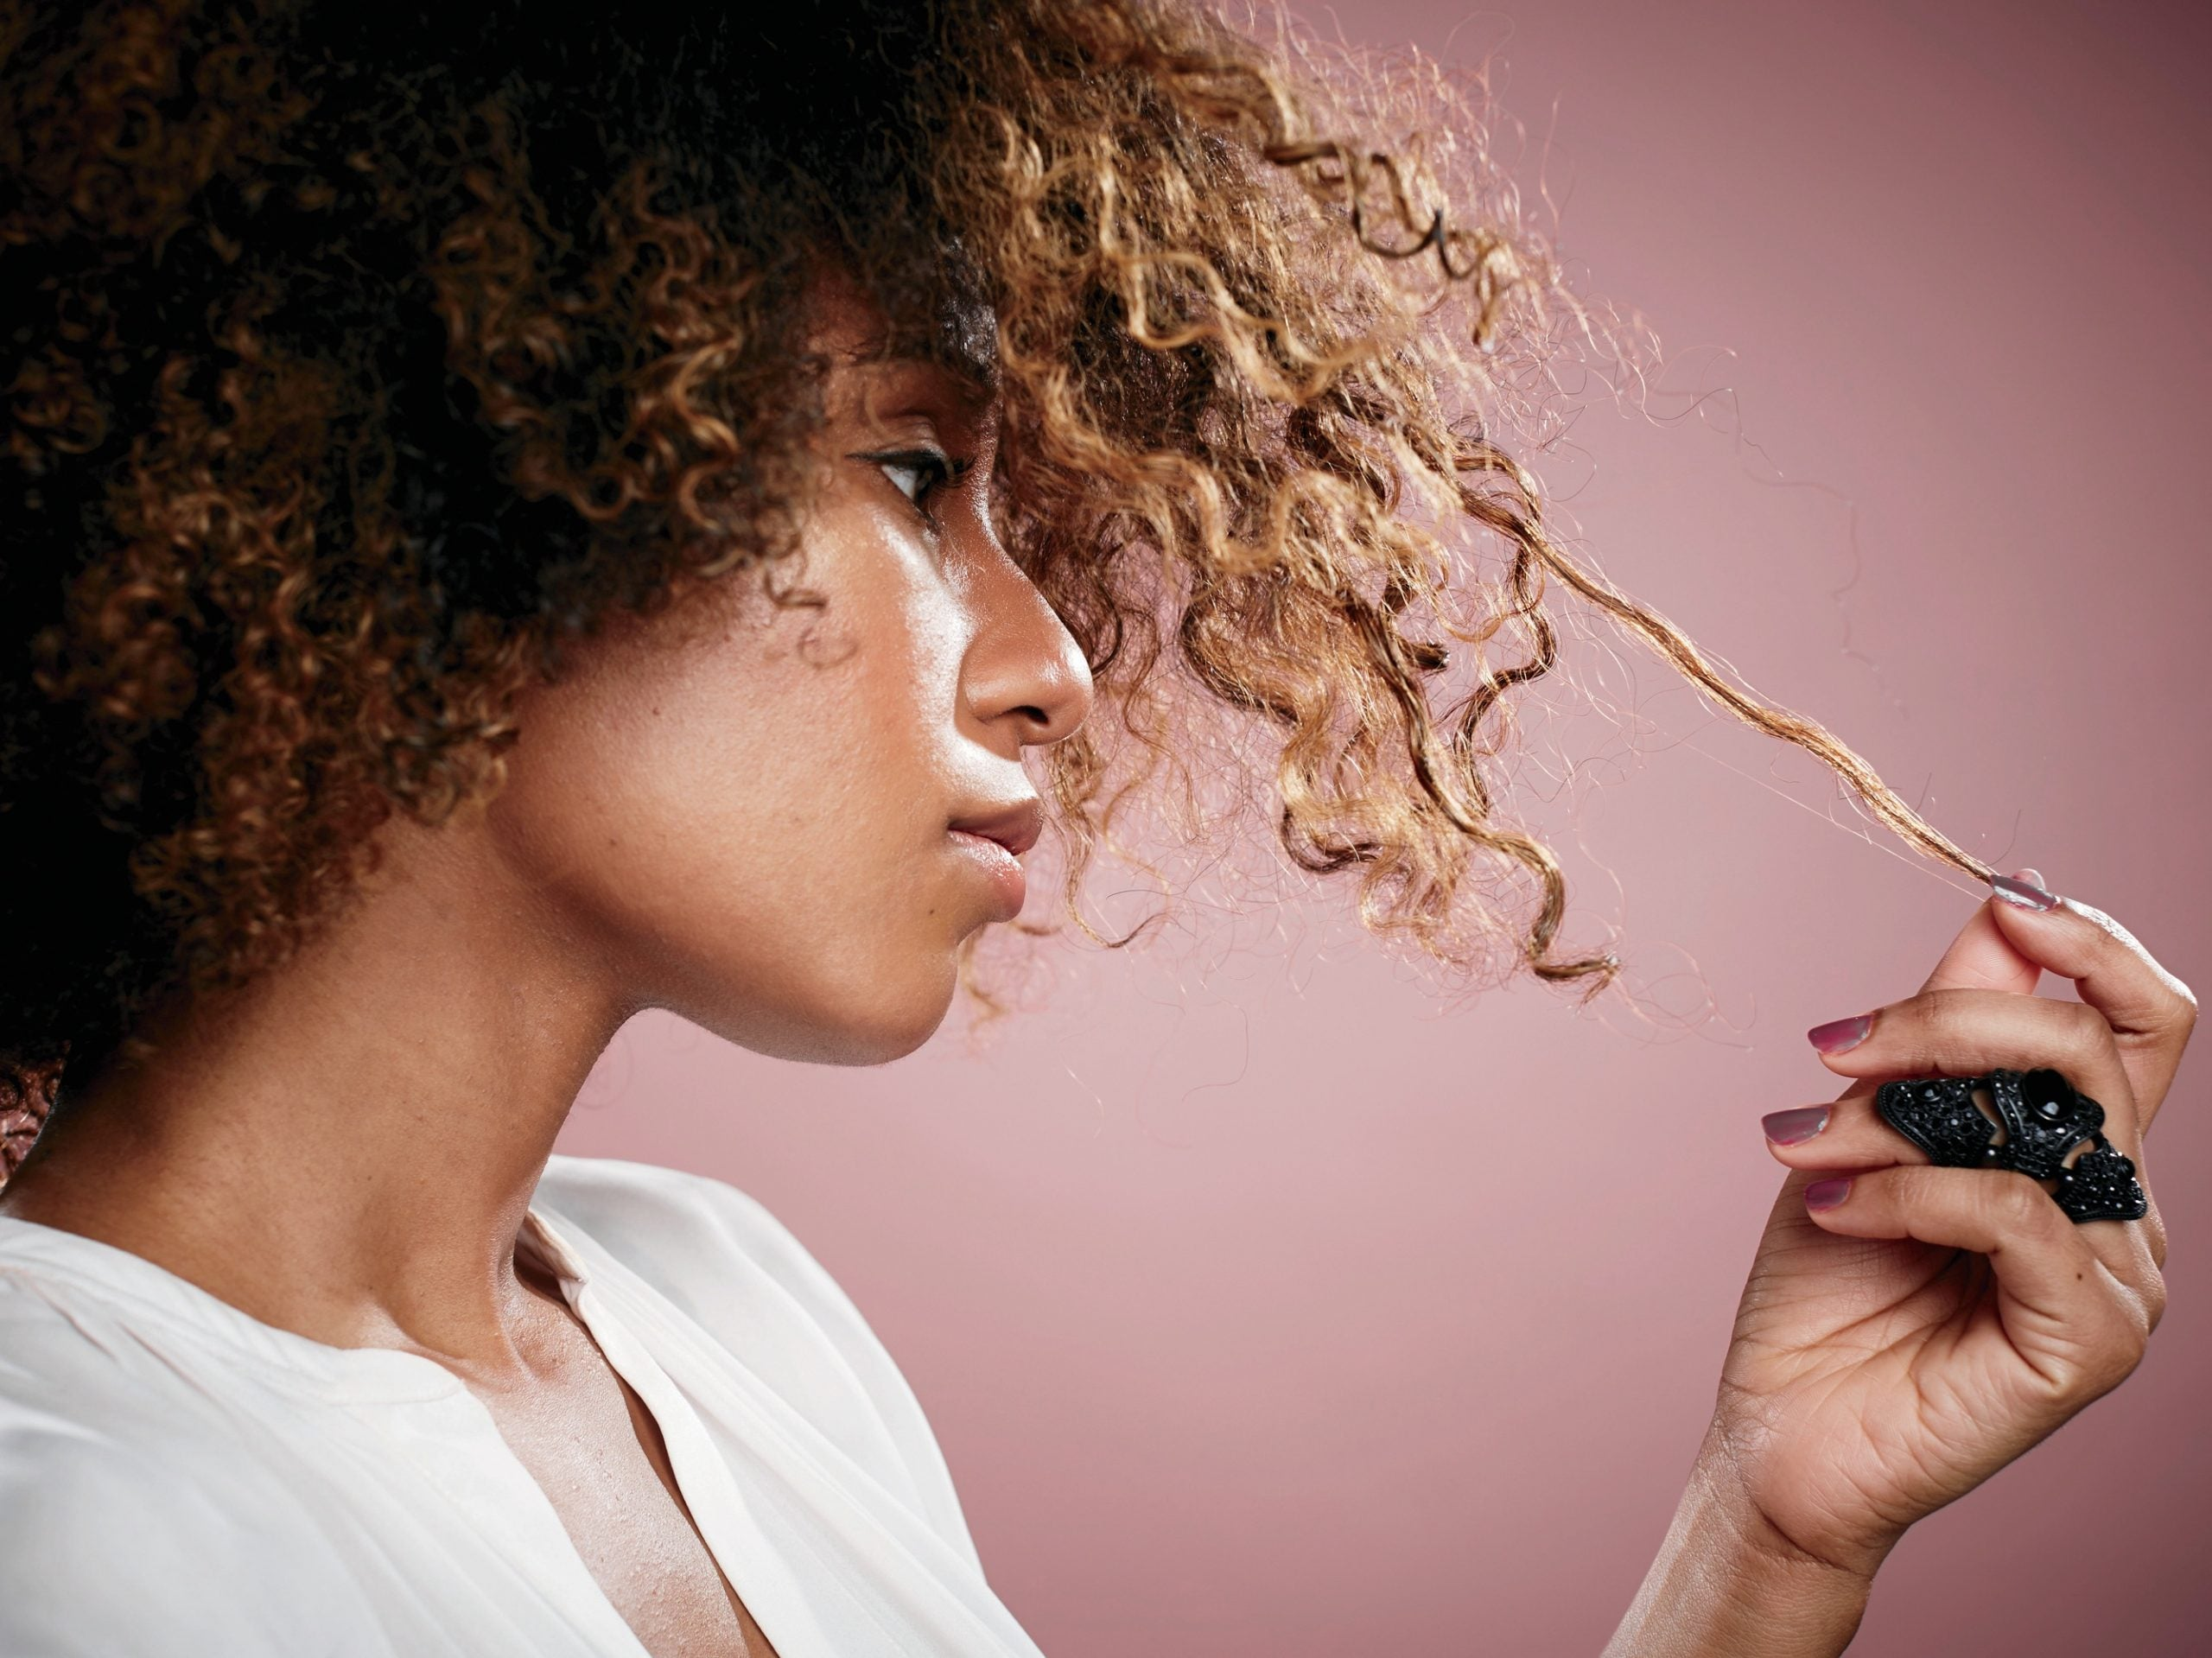 Are The Chemicals In Your Hair Dye Dangerous?